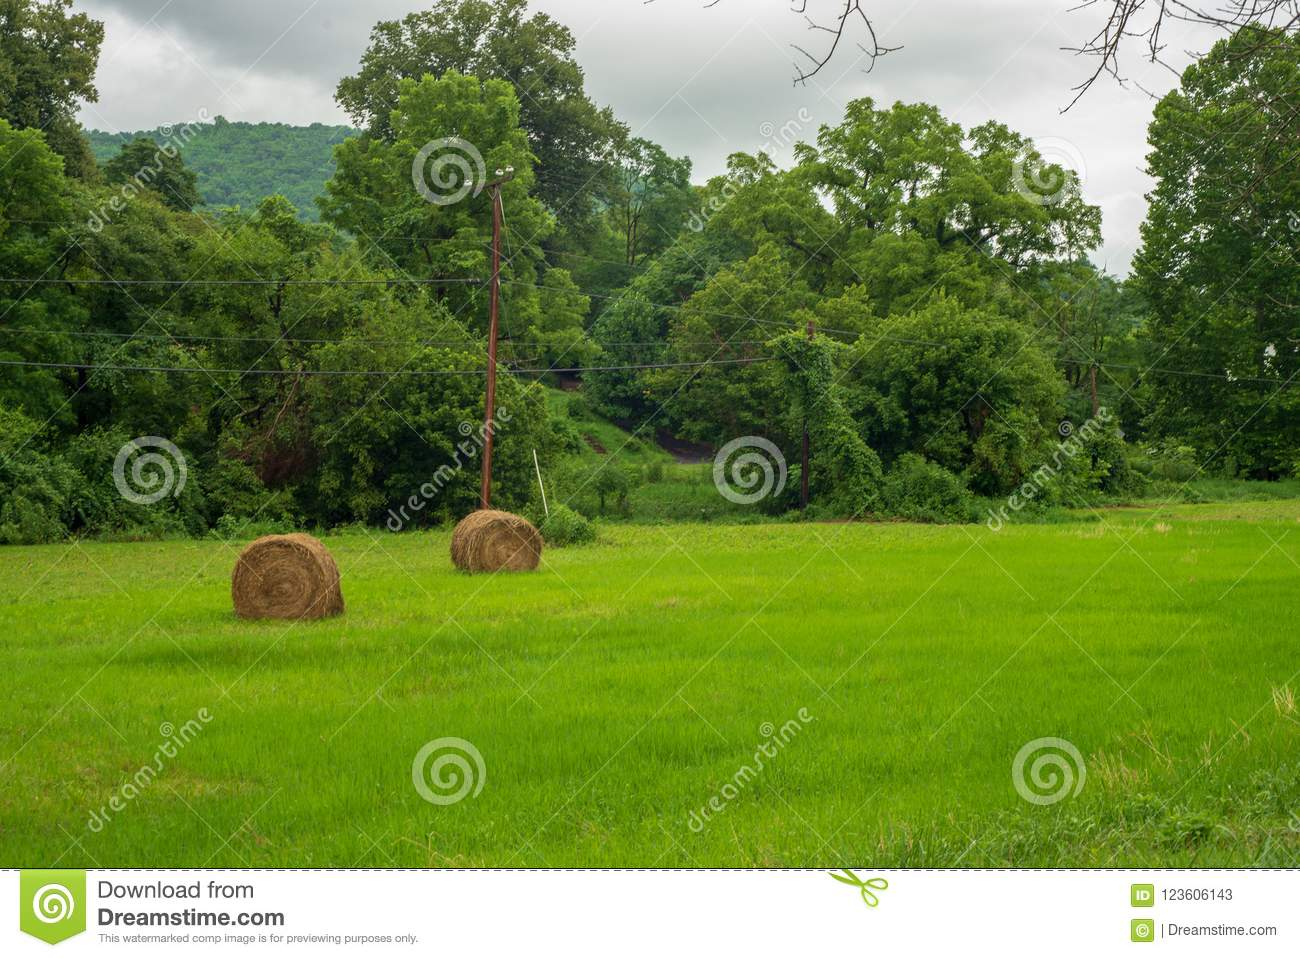 Hay Rolls In A Field In The Mountains Stock Image Image Of